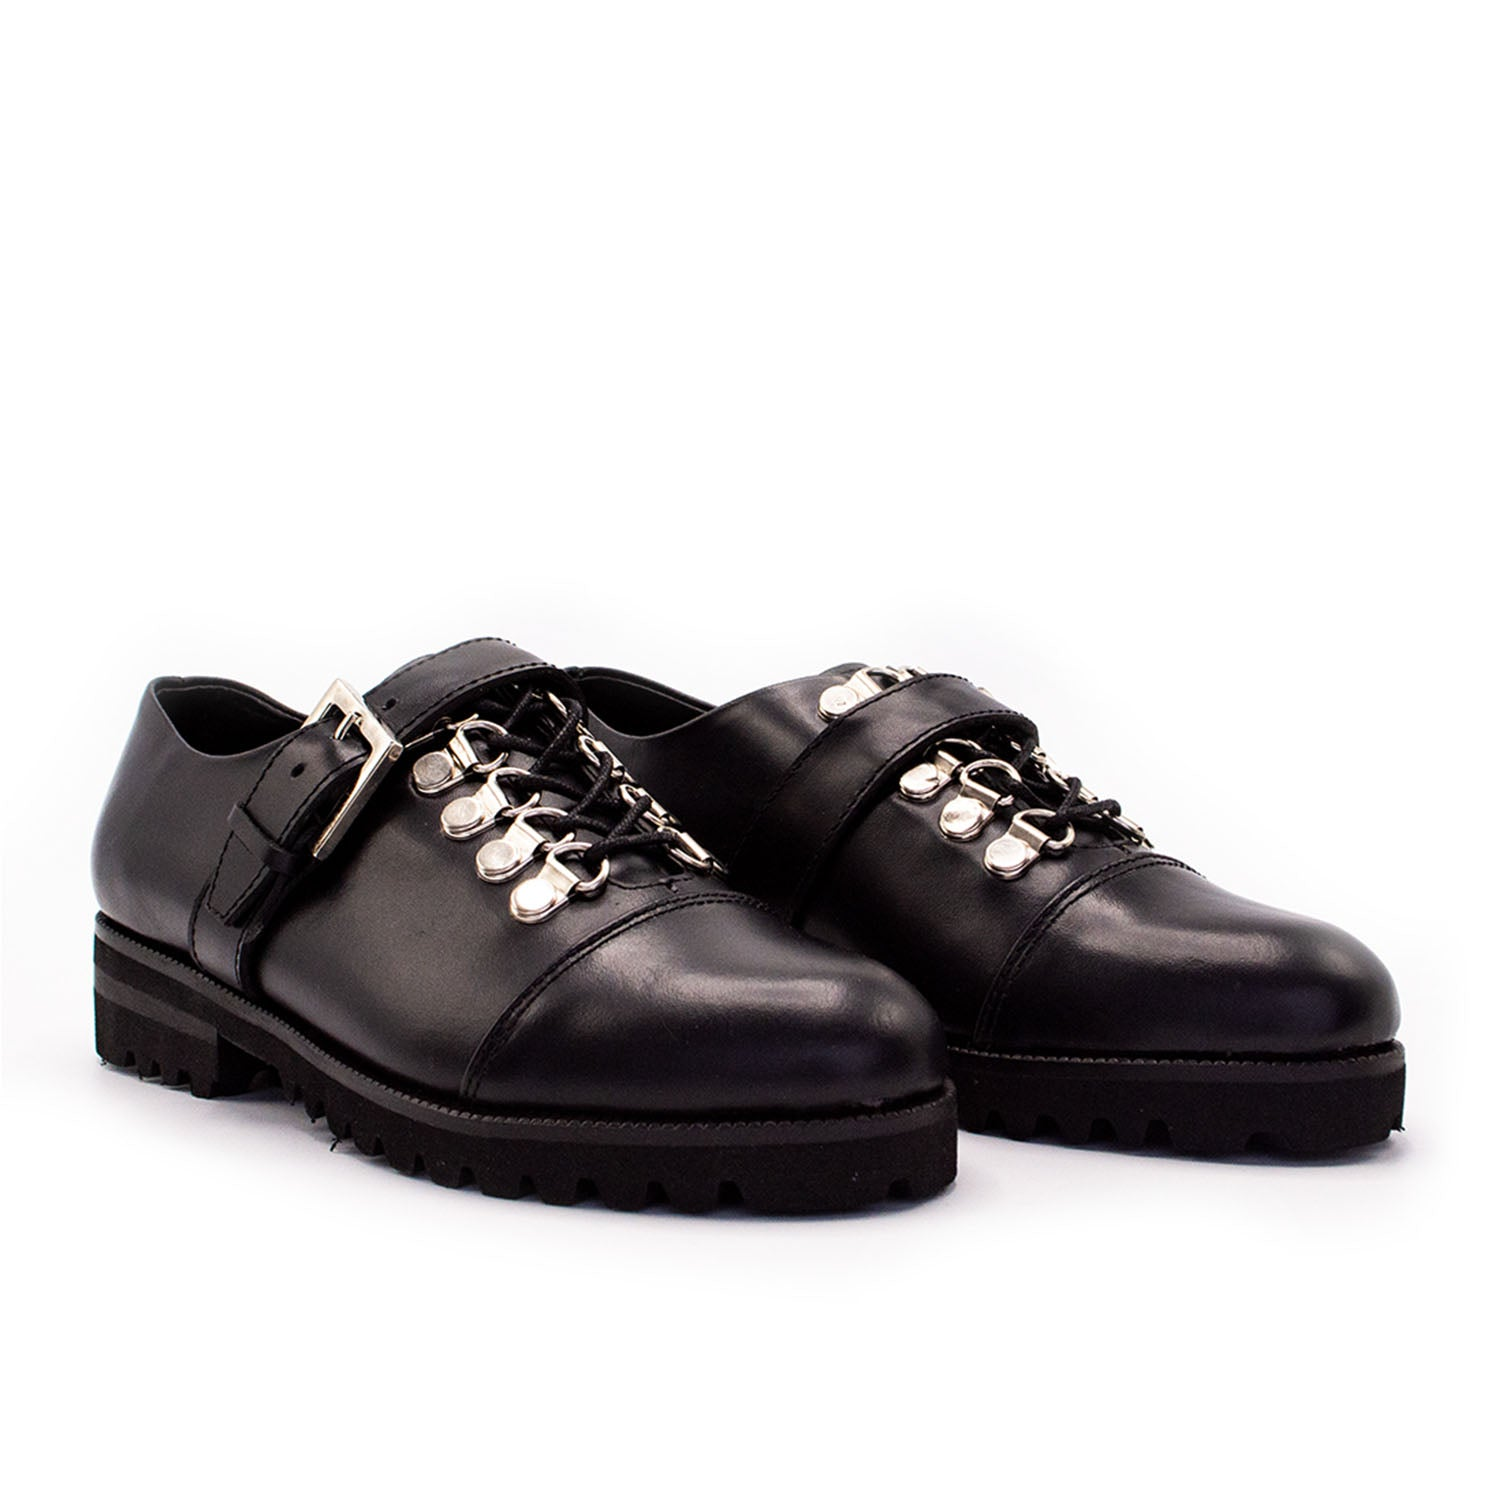 Lug Oxford Shoe Black